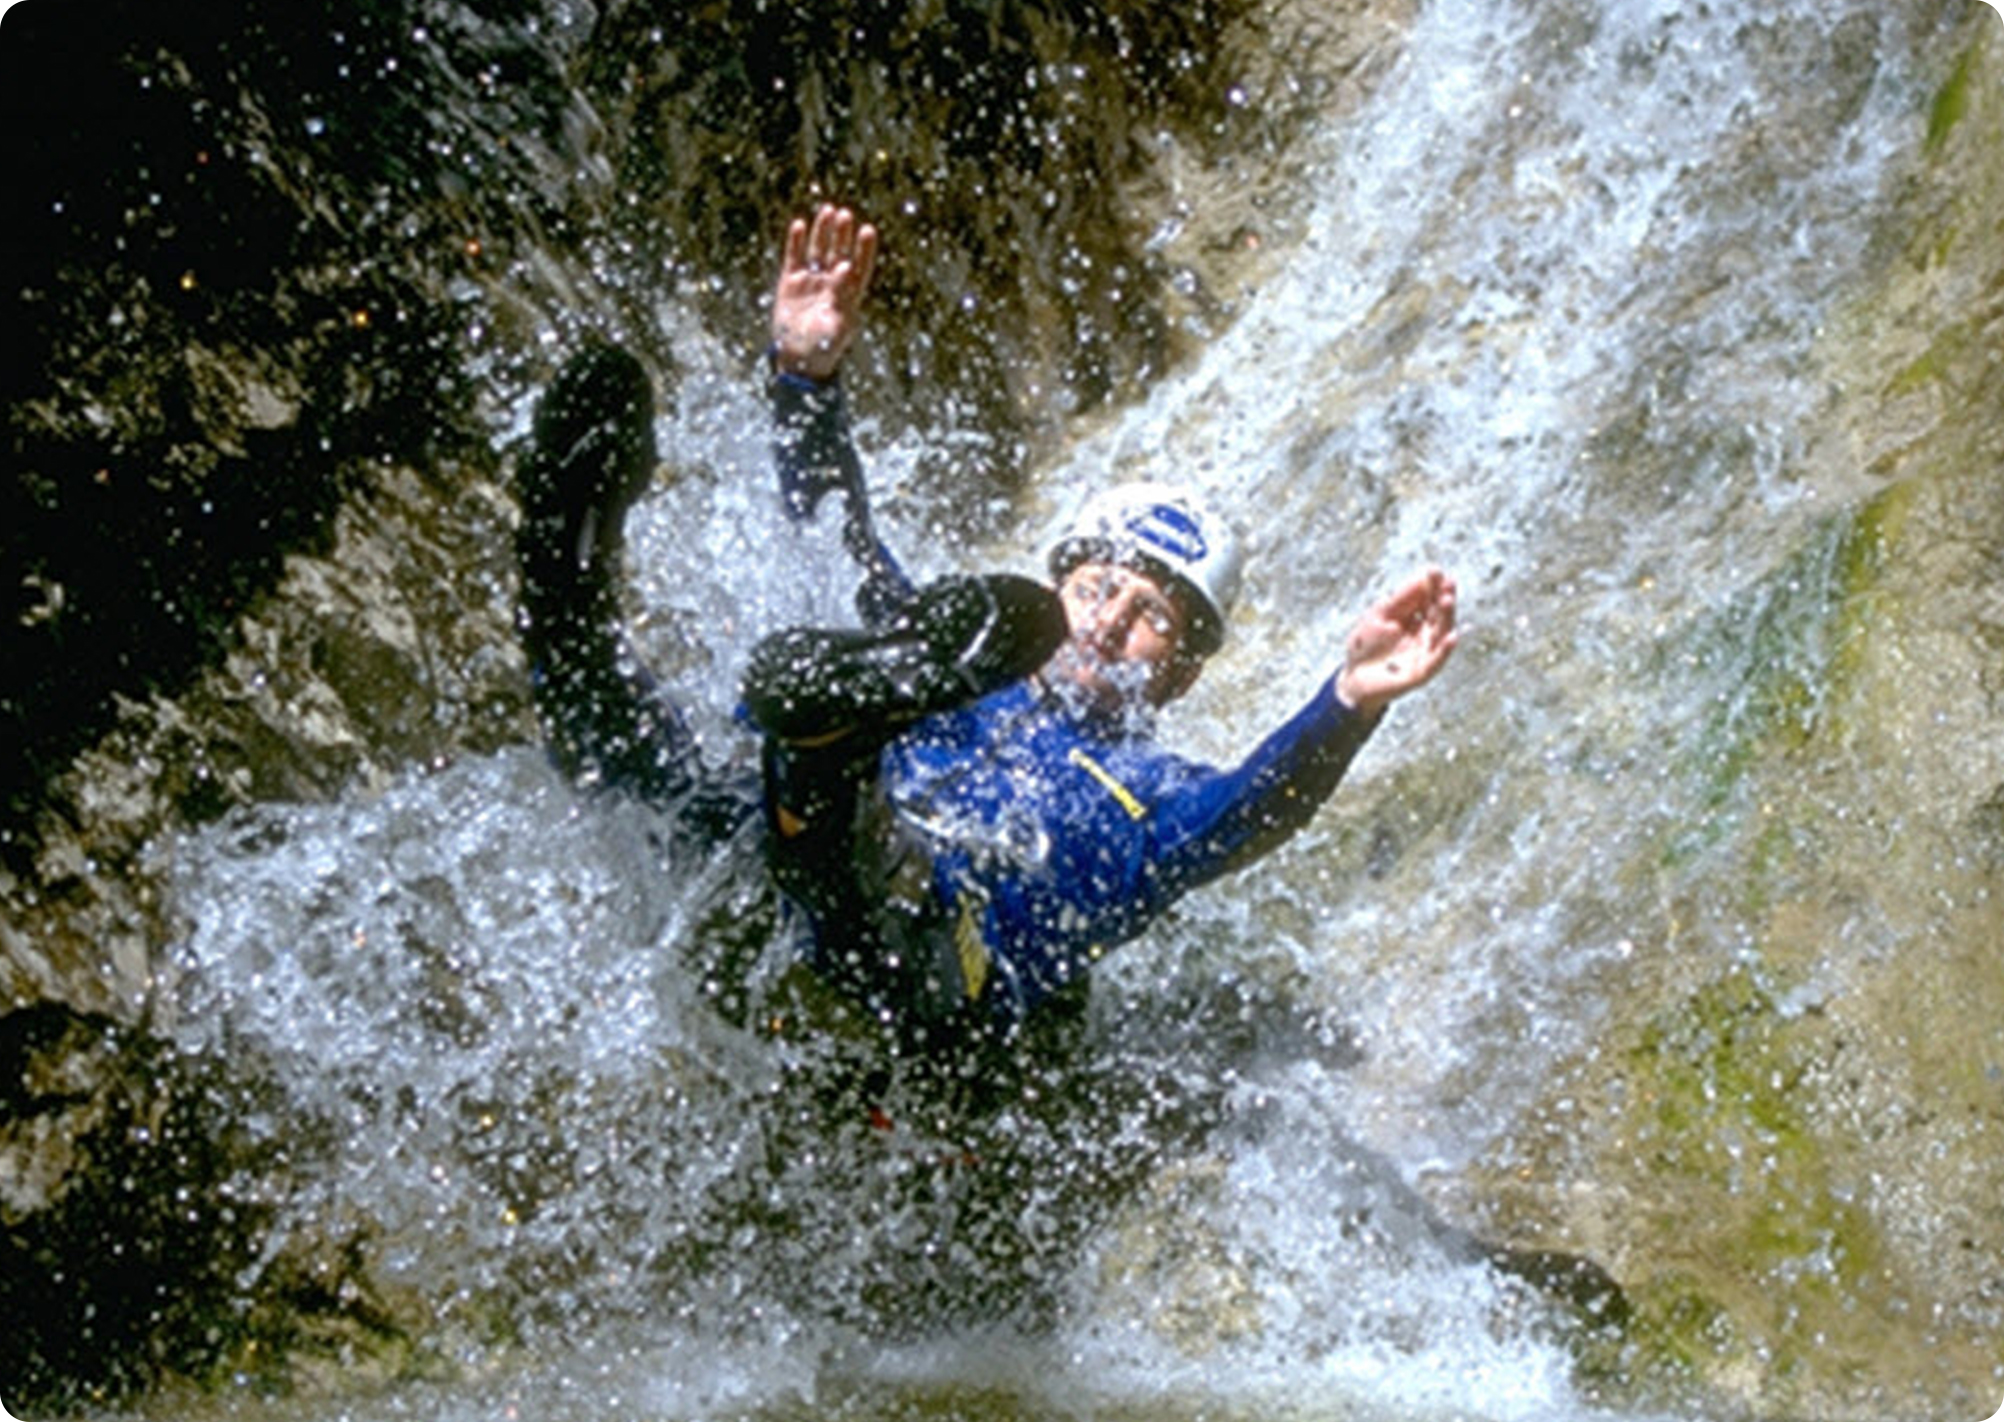 Canyoning in El Limón River